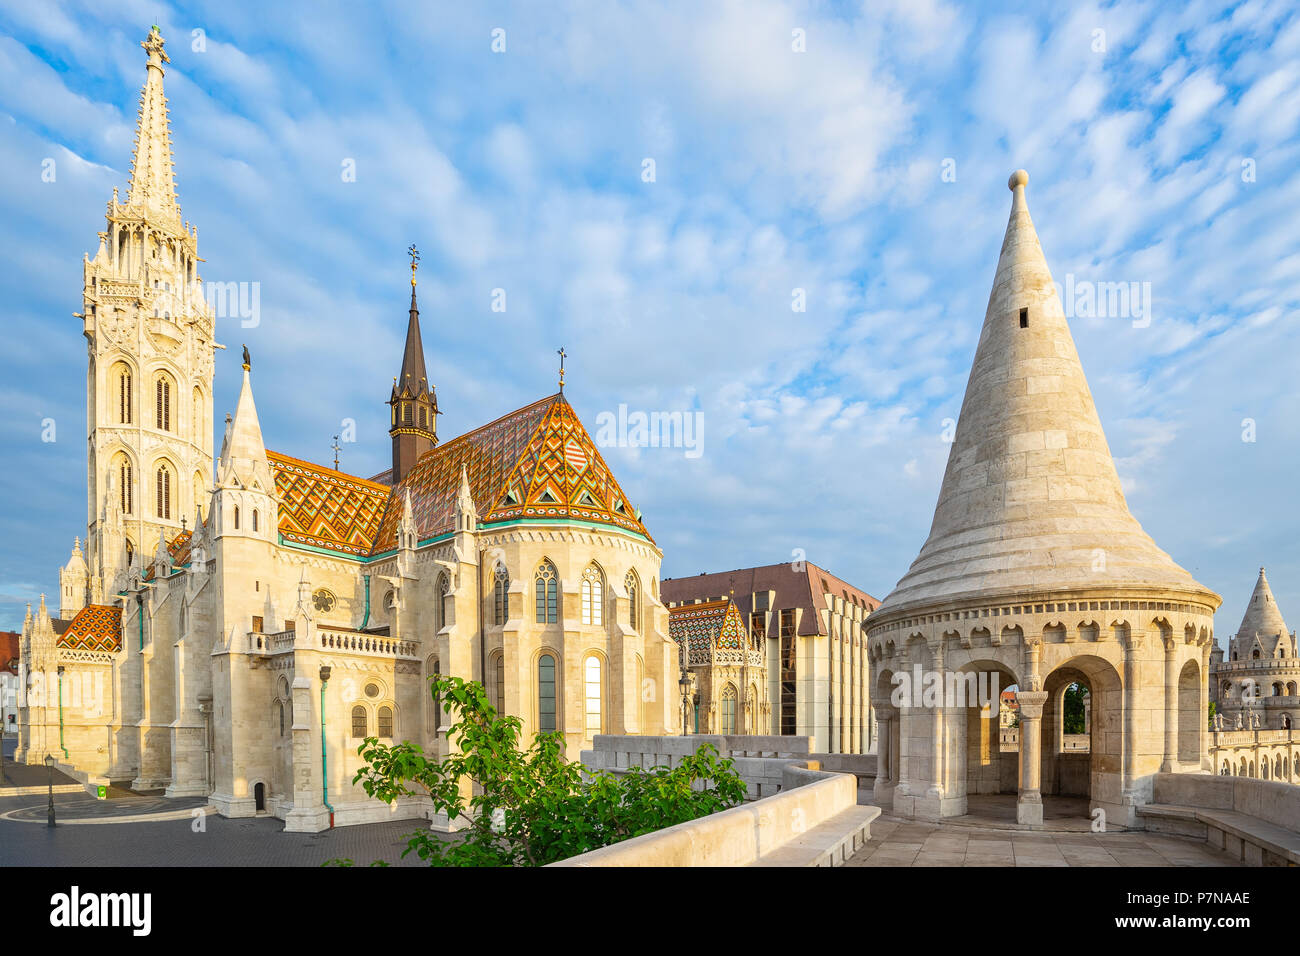 Matthias Church and tower of Fisherman's Bastion in Budapest, Hungary. - Stock Image